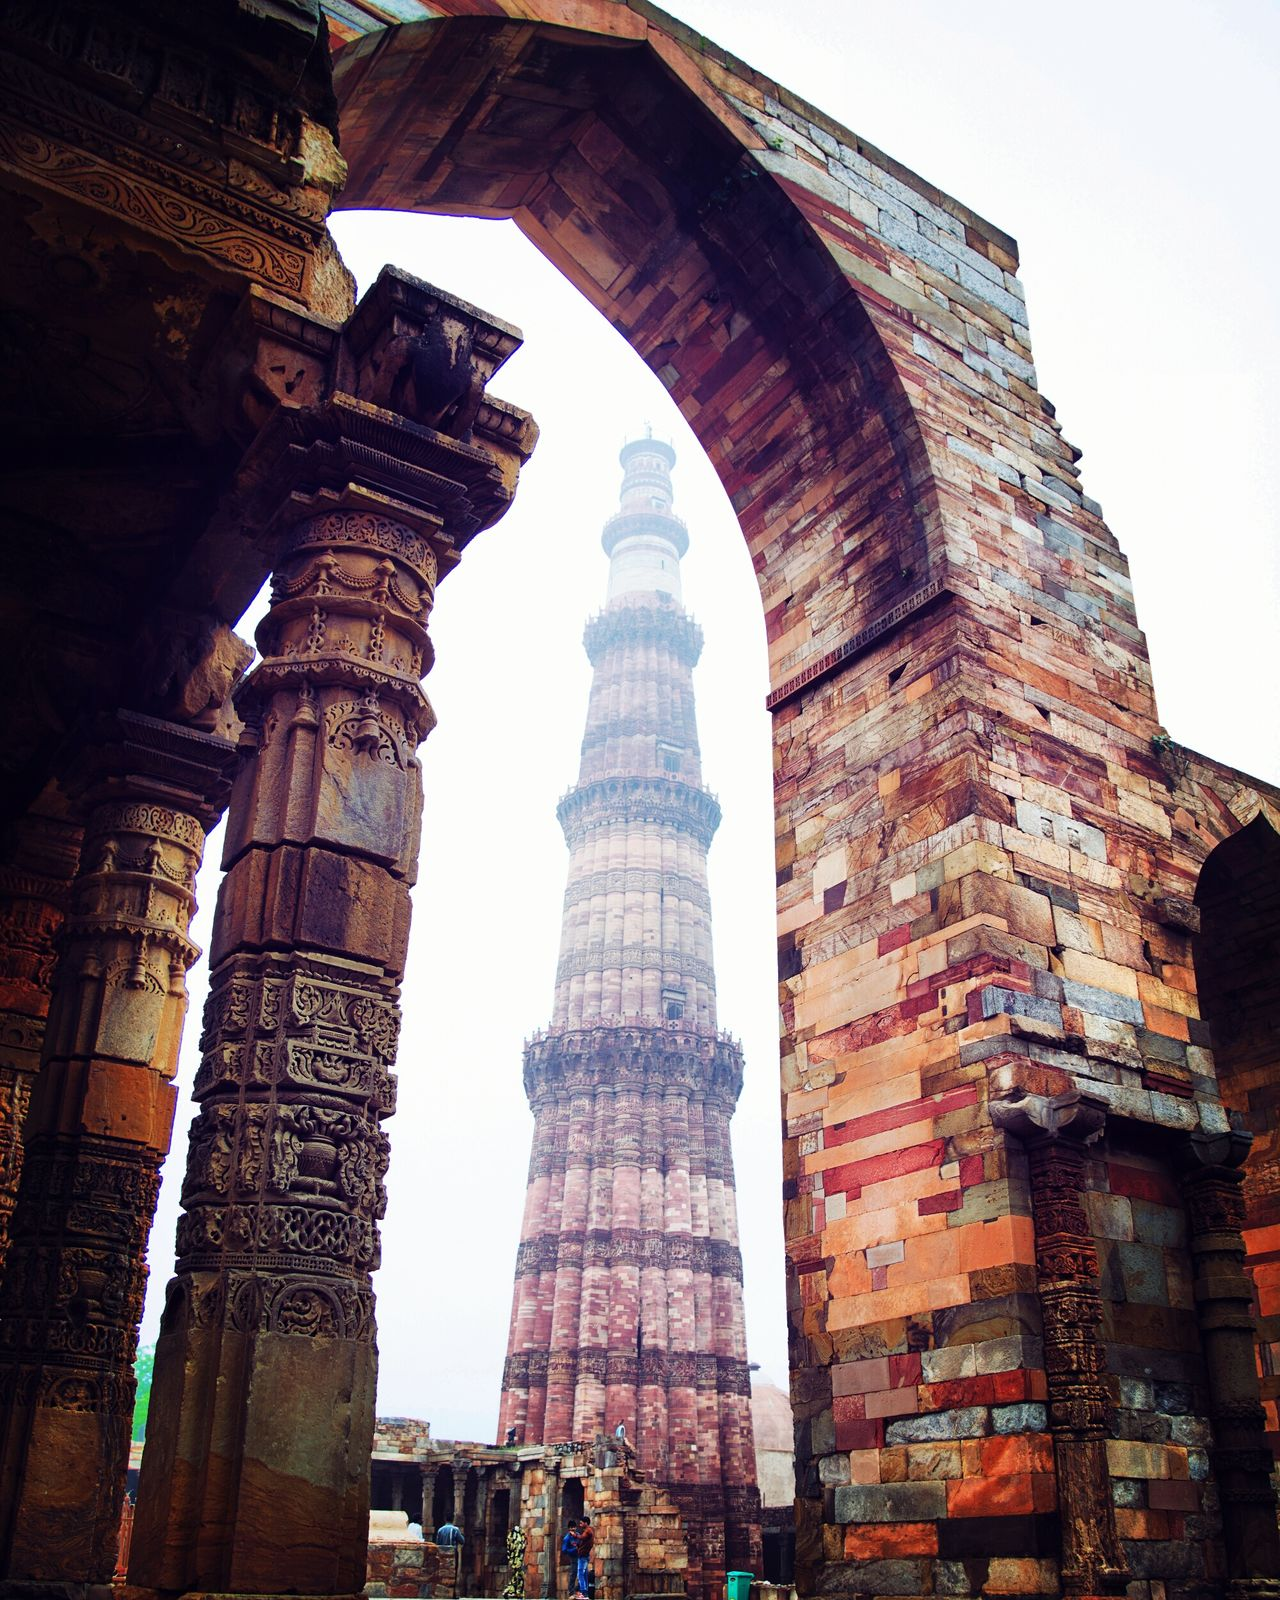 Tourists Travel Photography Taking Photos Sightseeing Photooftheday Monument Monumental Buildings Qutab Minar View Angle Photography Perception Historical Sights Enjoying Life Being Adventurous Stories Behind The City Old But Awesome Old Architecture OldtimeOldtime